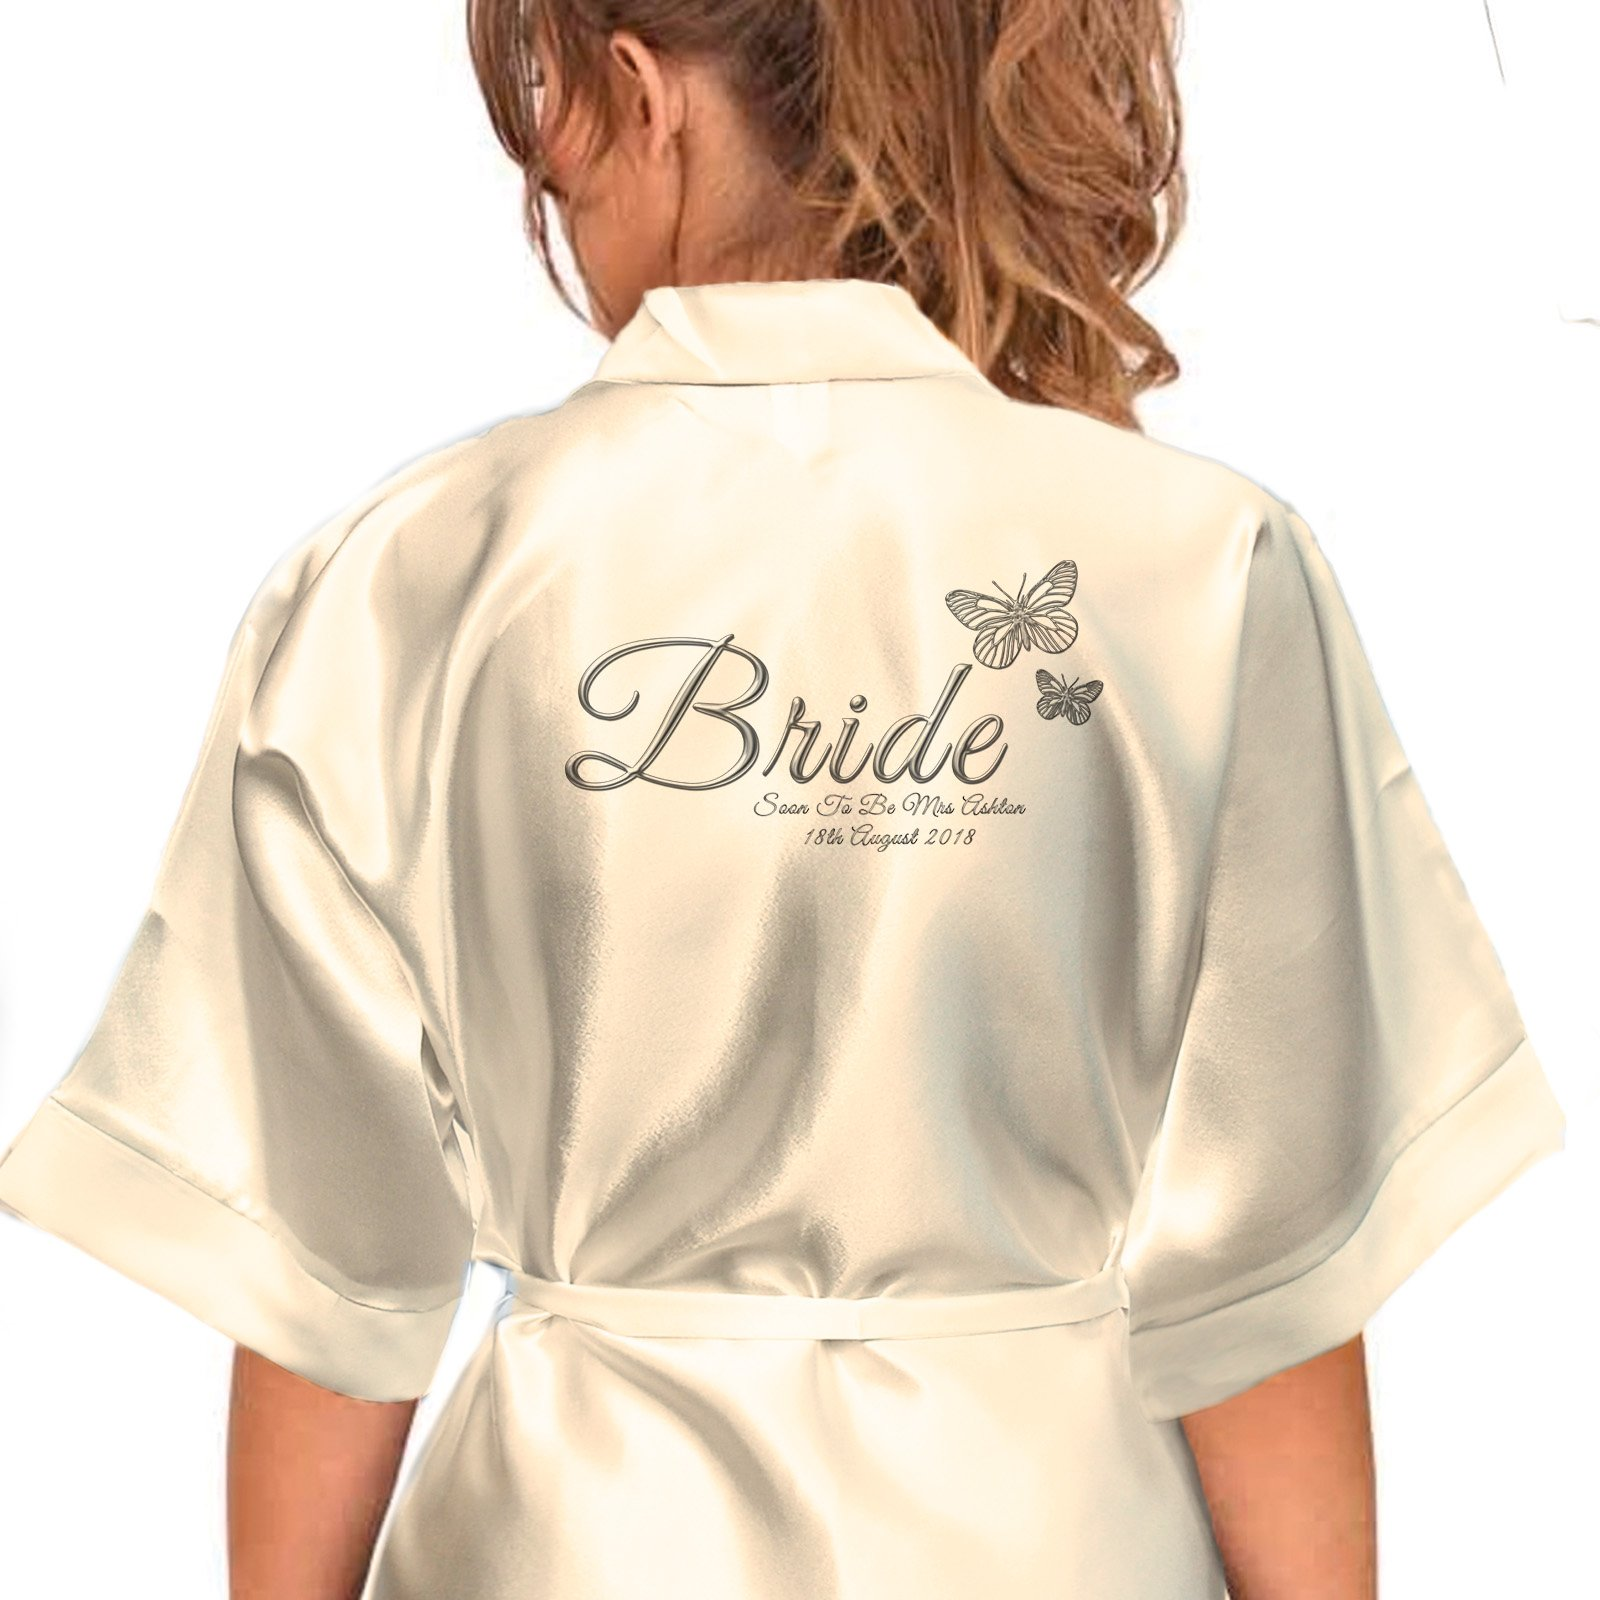 Bride Dressing Gowns: Amazon.co.uk